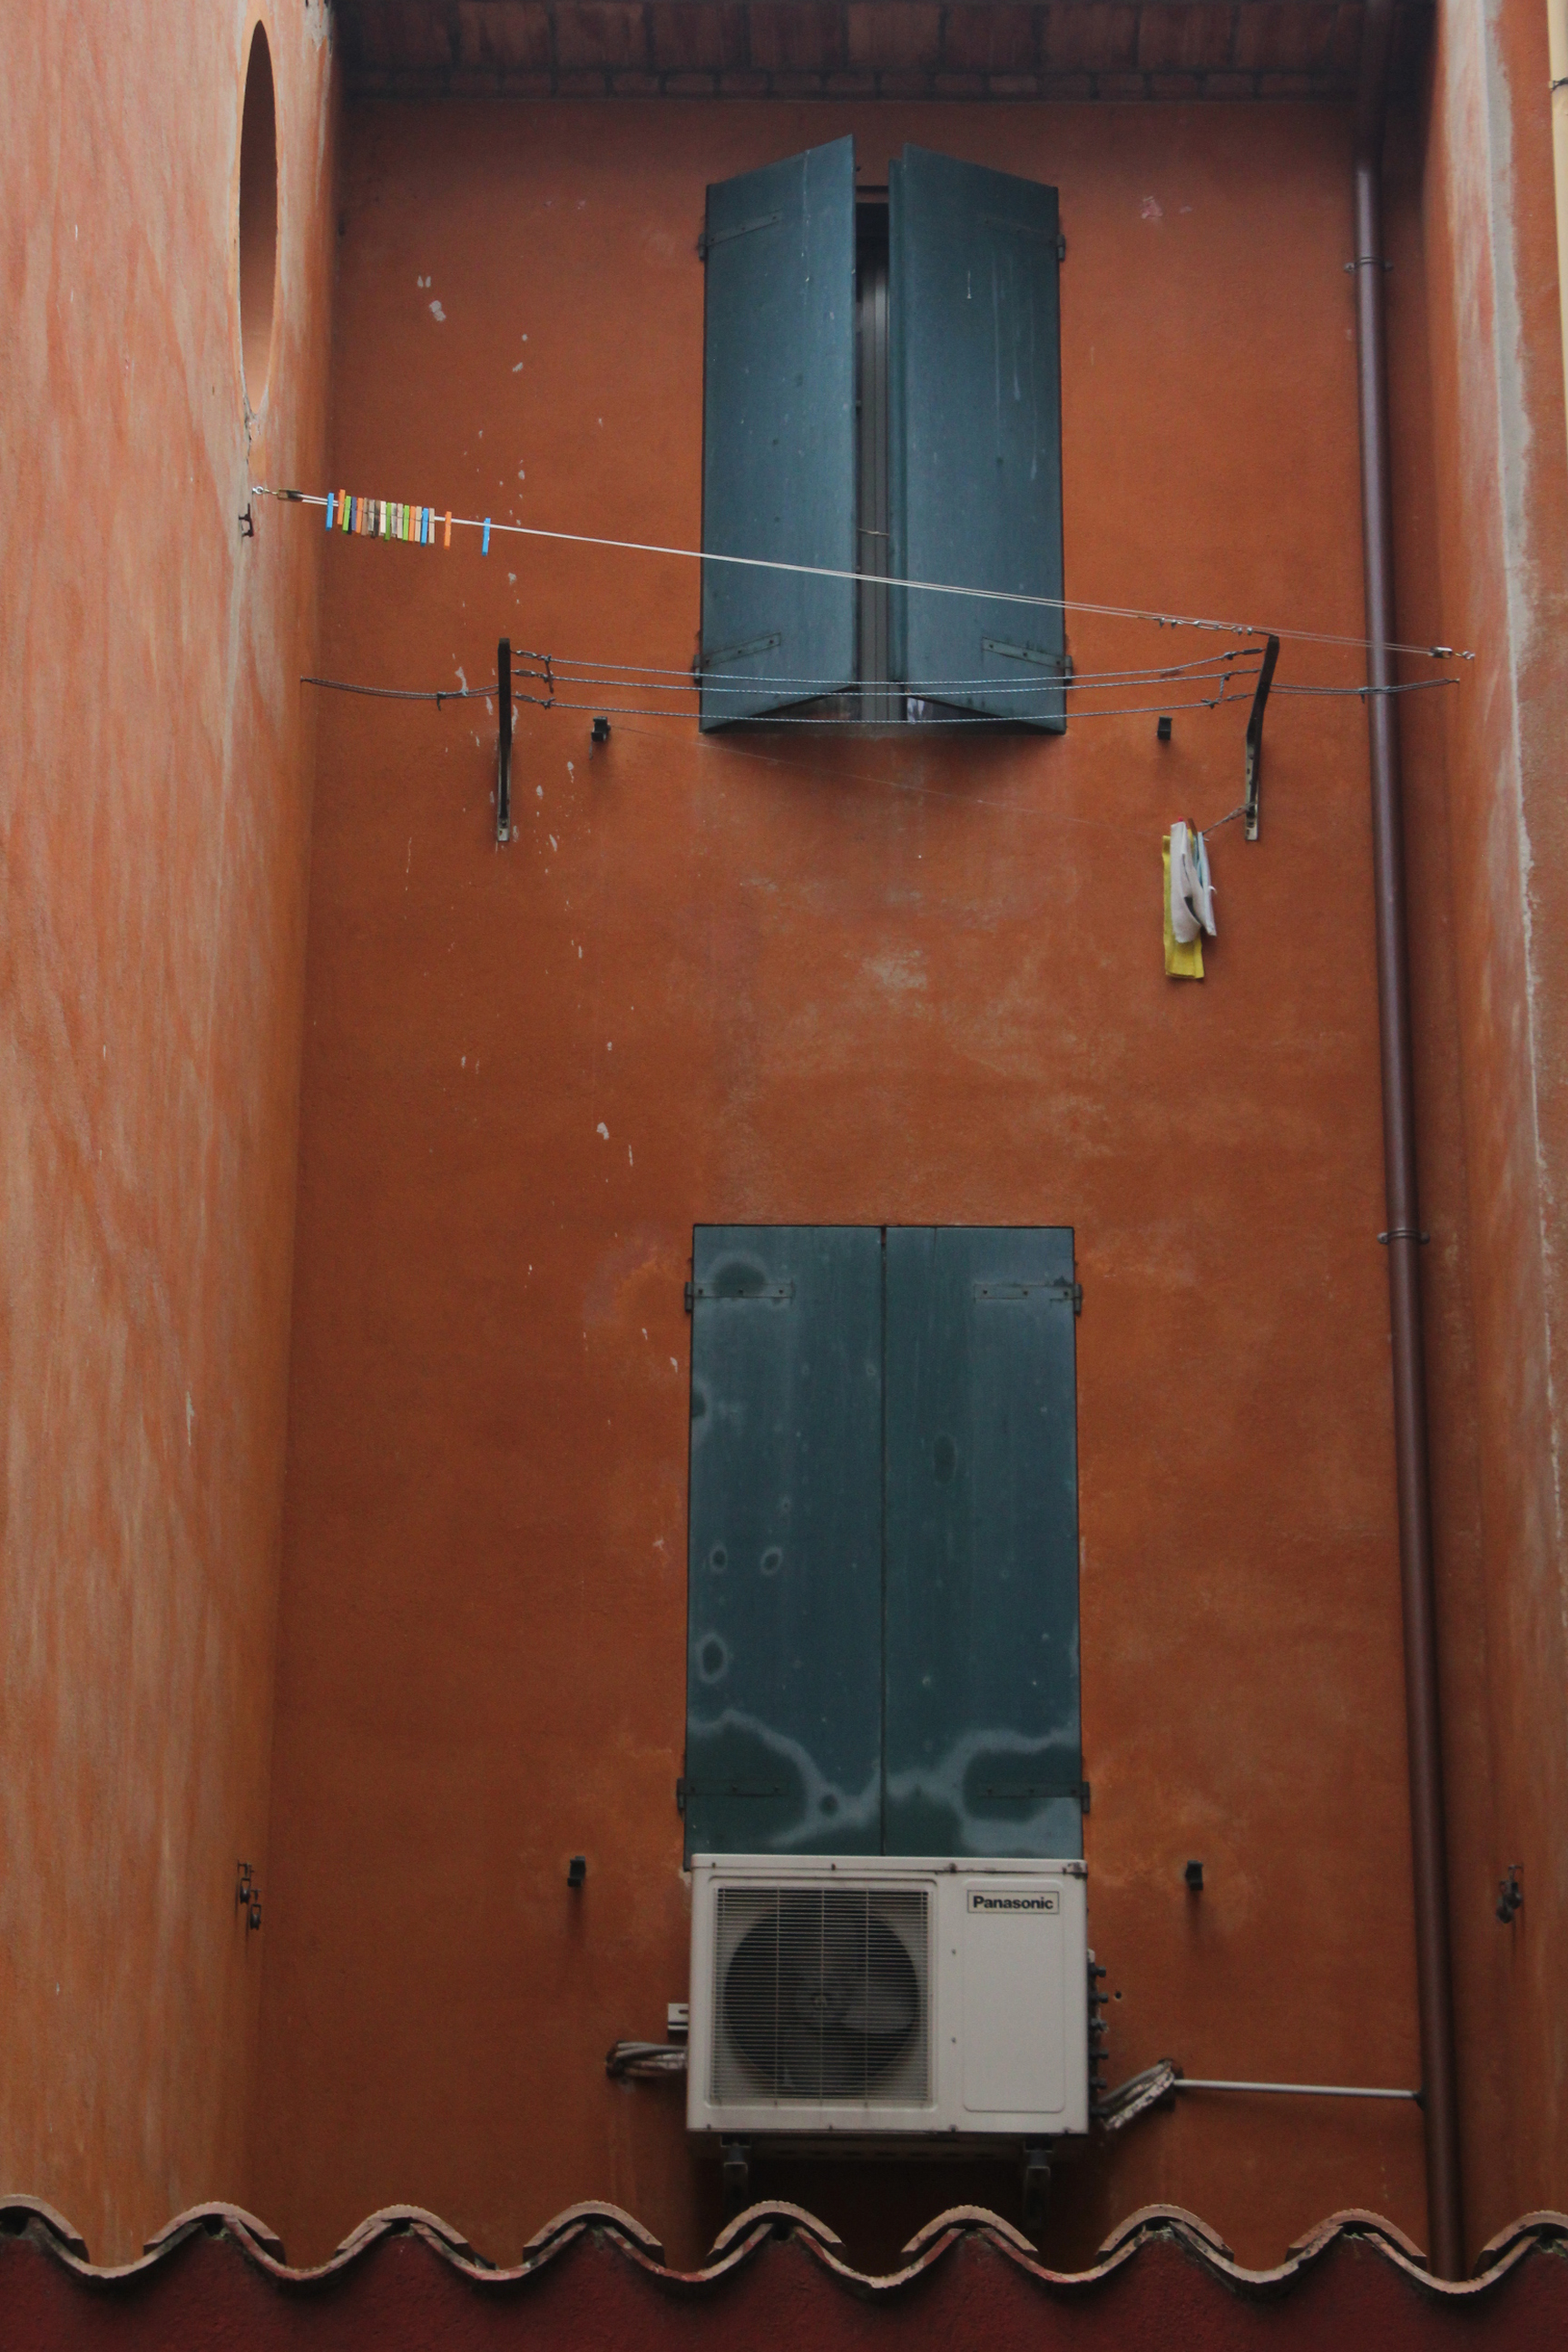 Bologna Italy Red Building Green Window Clothesline